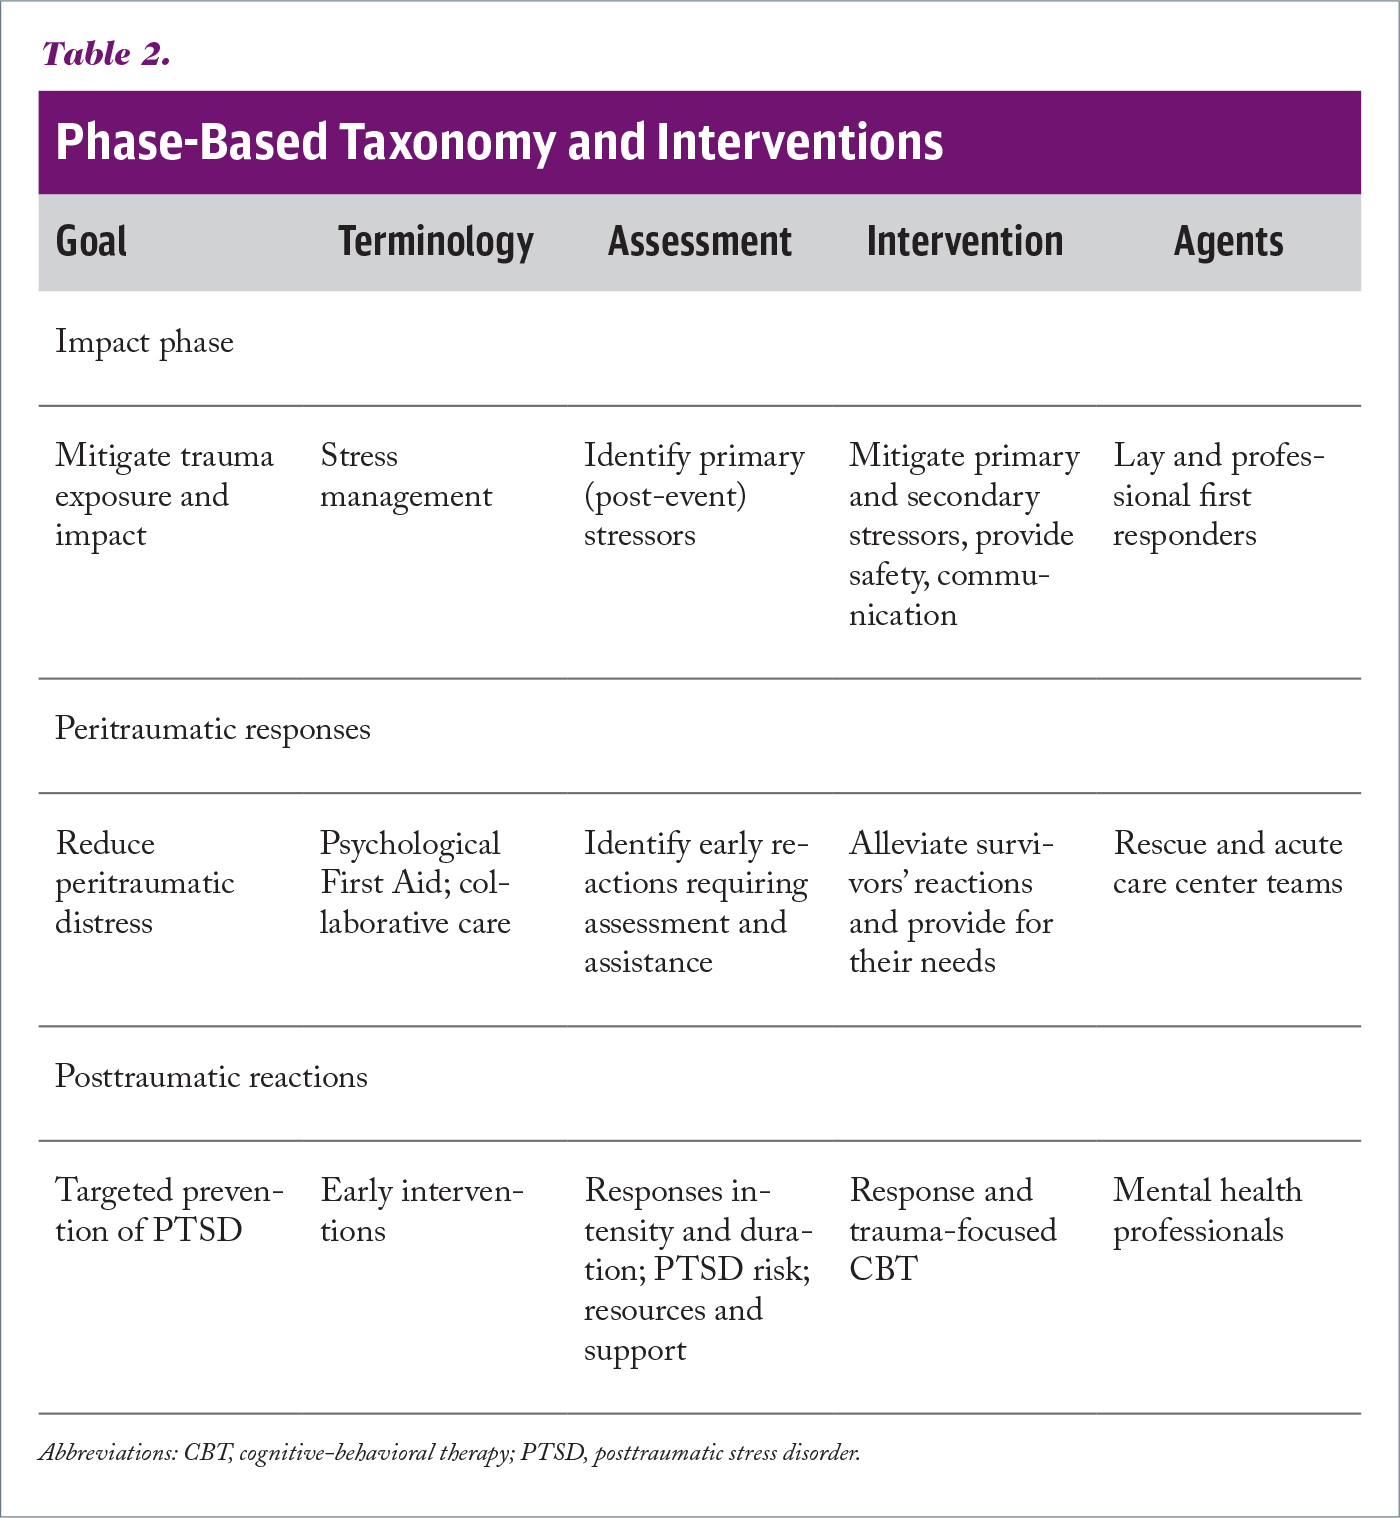 Phase-Based Taxonomy and Interventions